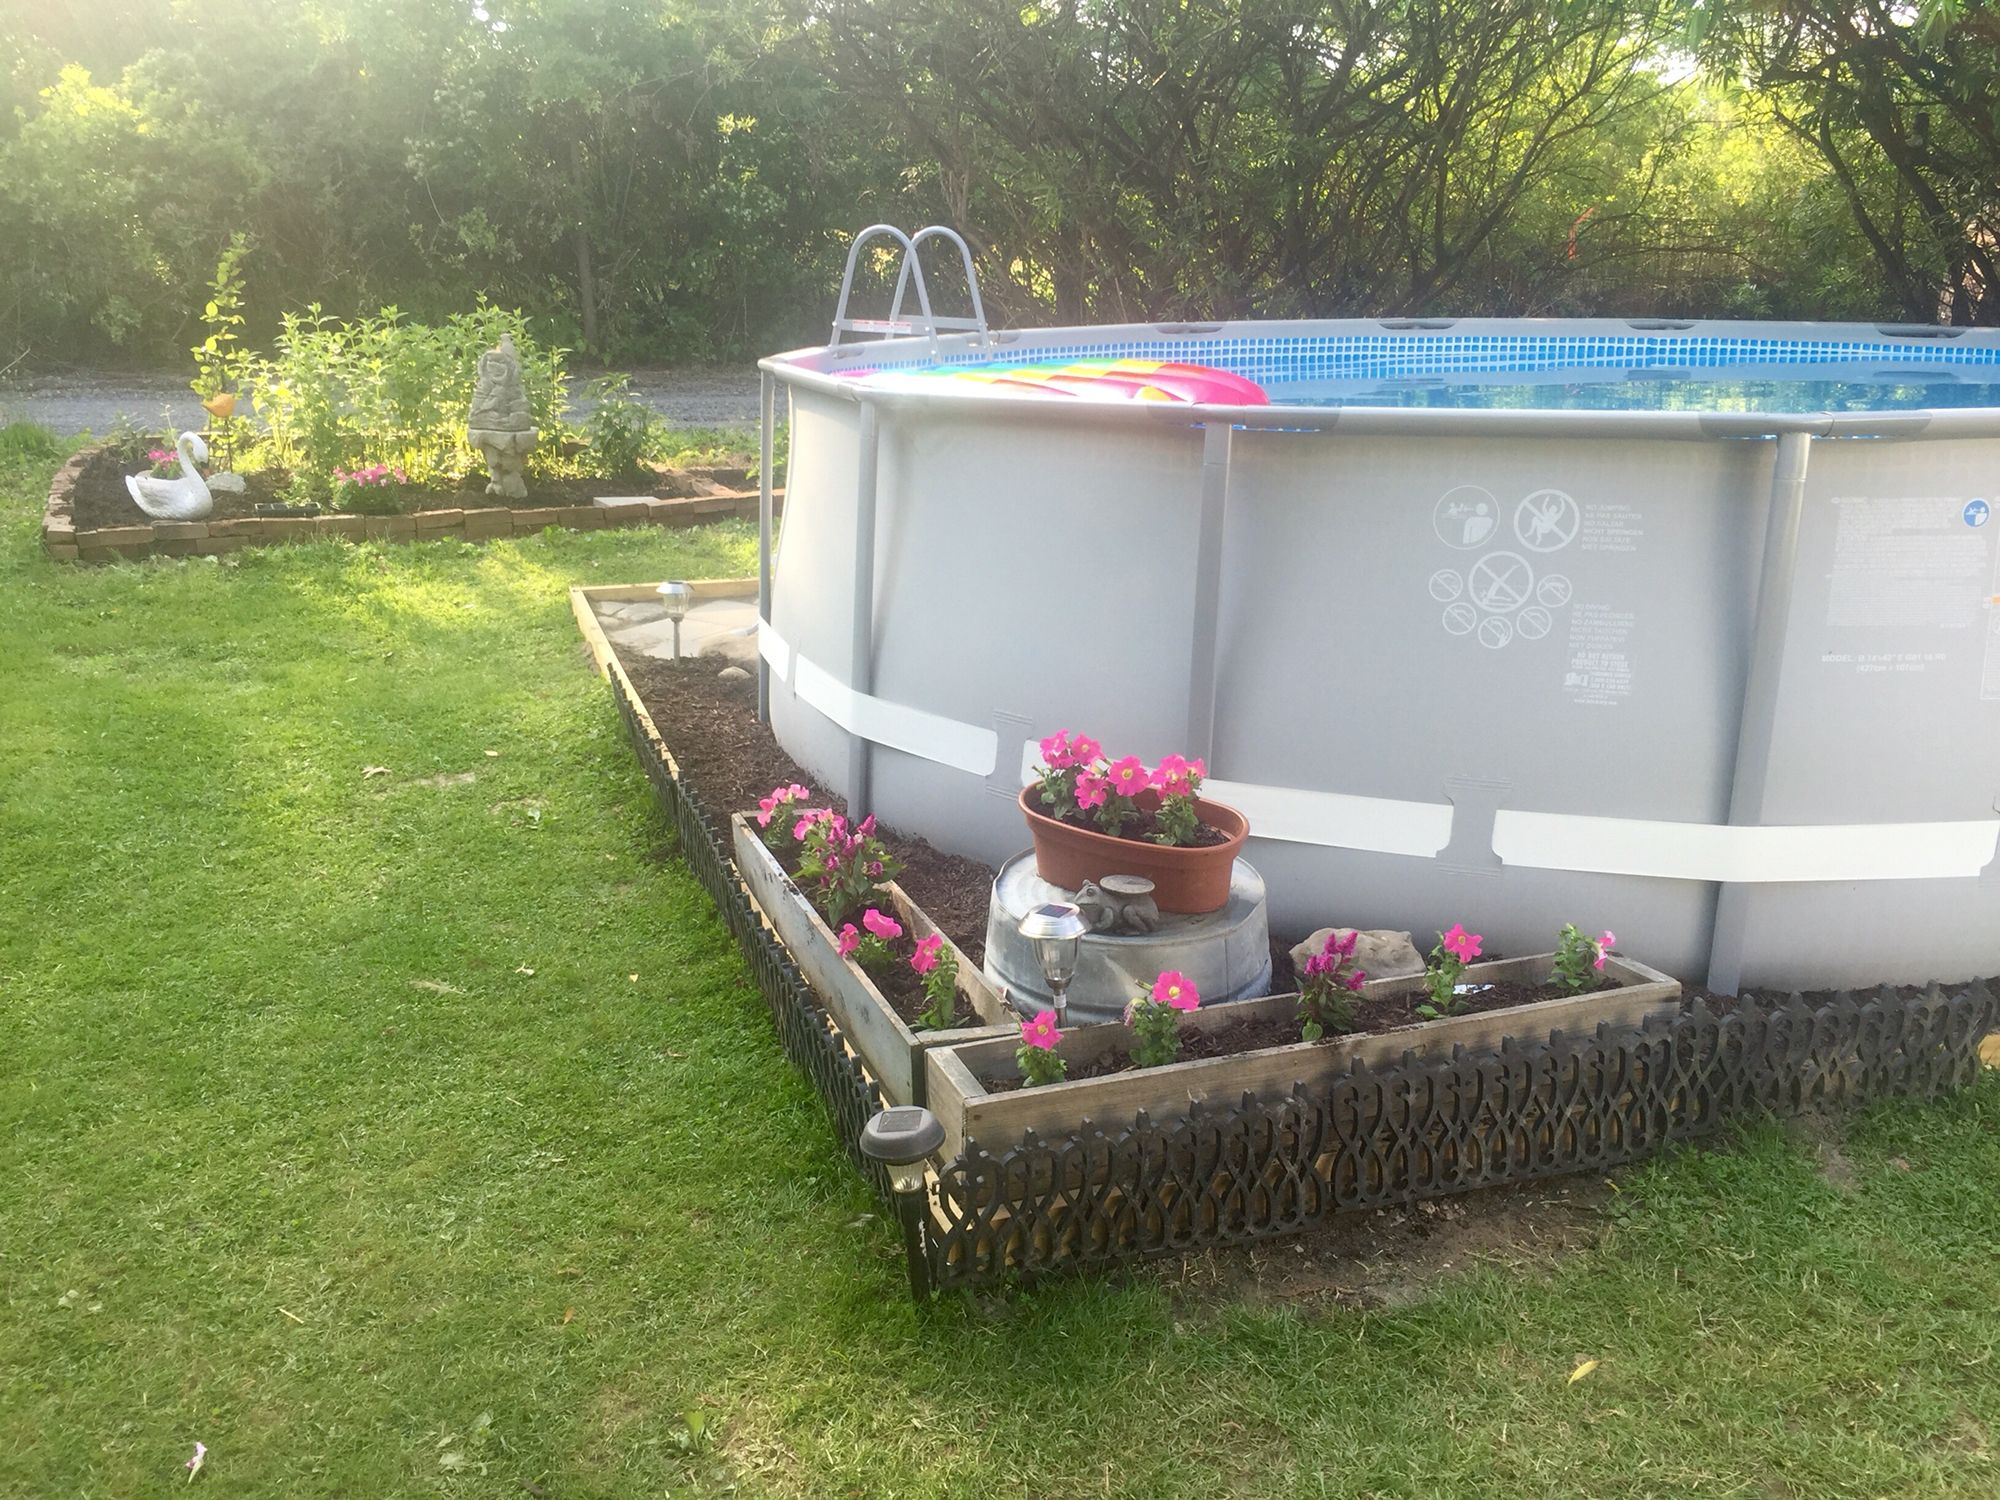 Did a little landscaping around our 14x42 Intex ultra frame pool ...